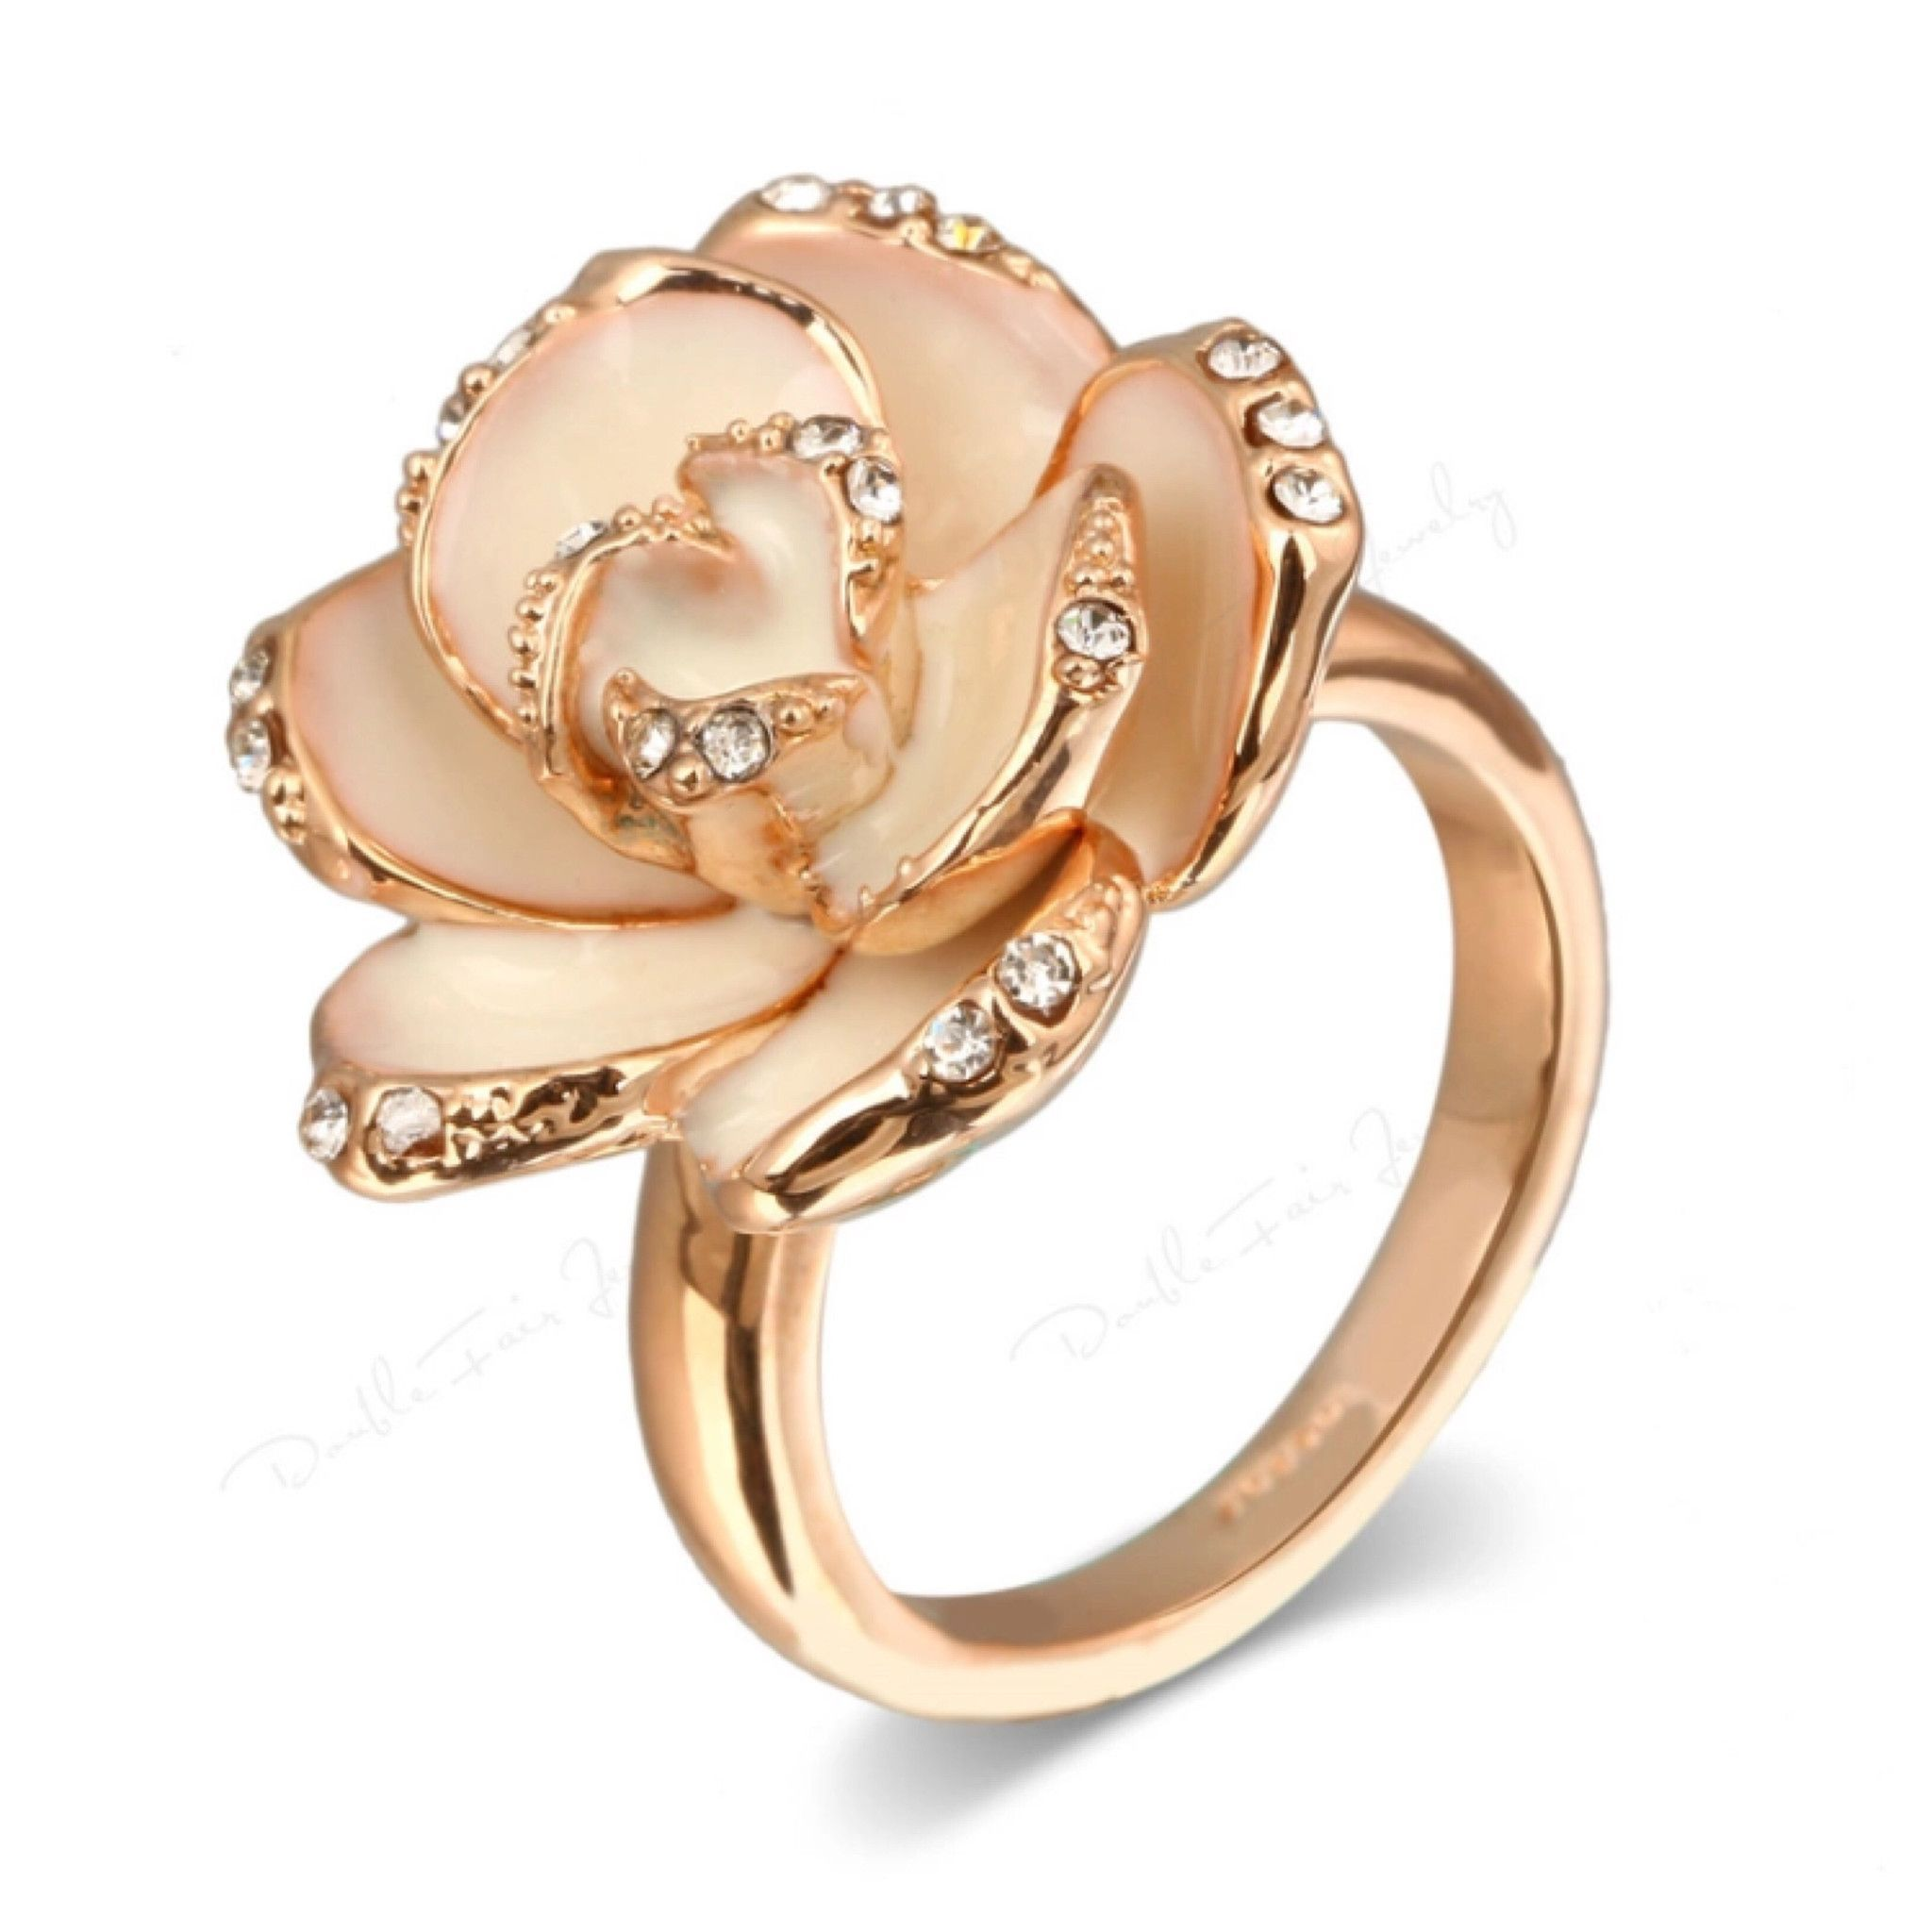 moissanite handmade unique jewelry diamonds wedding idea ring awesome rings with engagement floral camellia two gift tone of gold